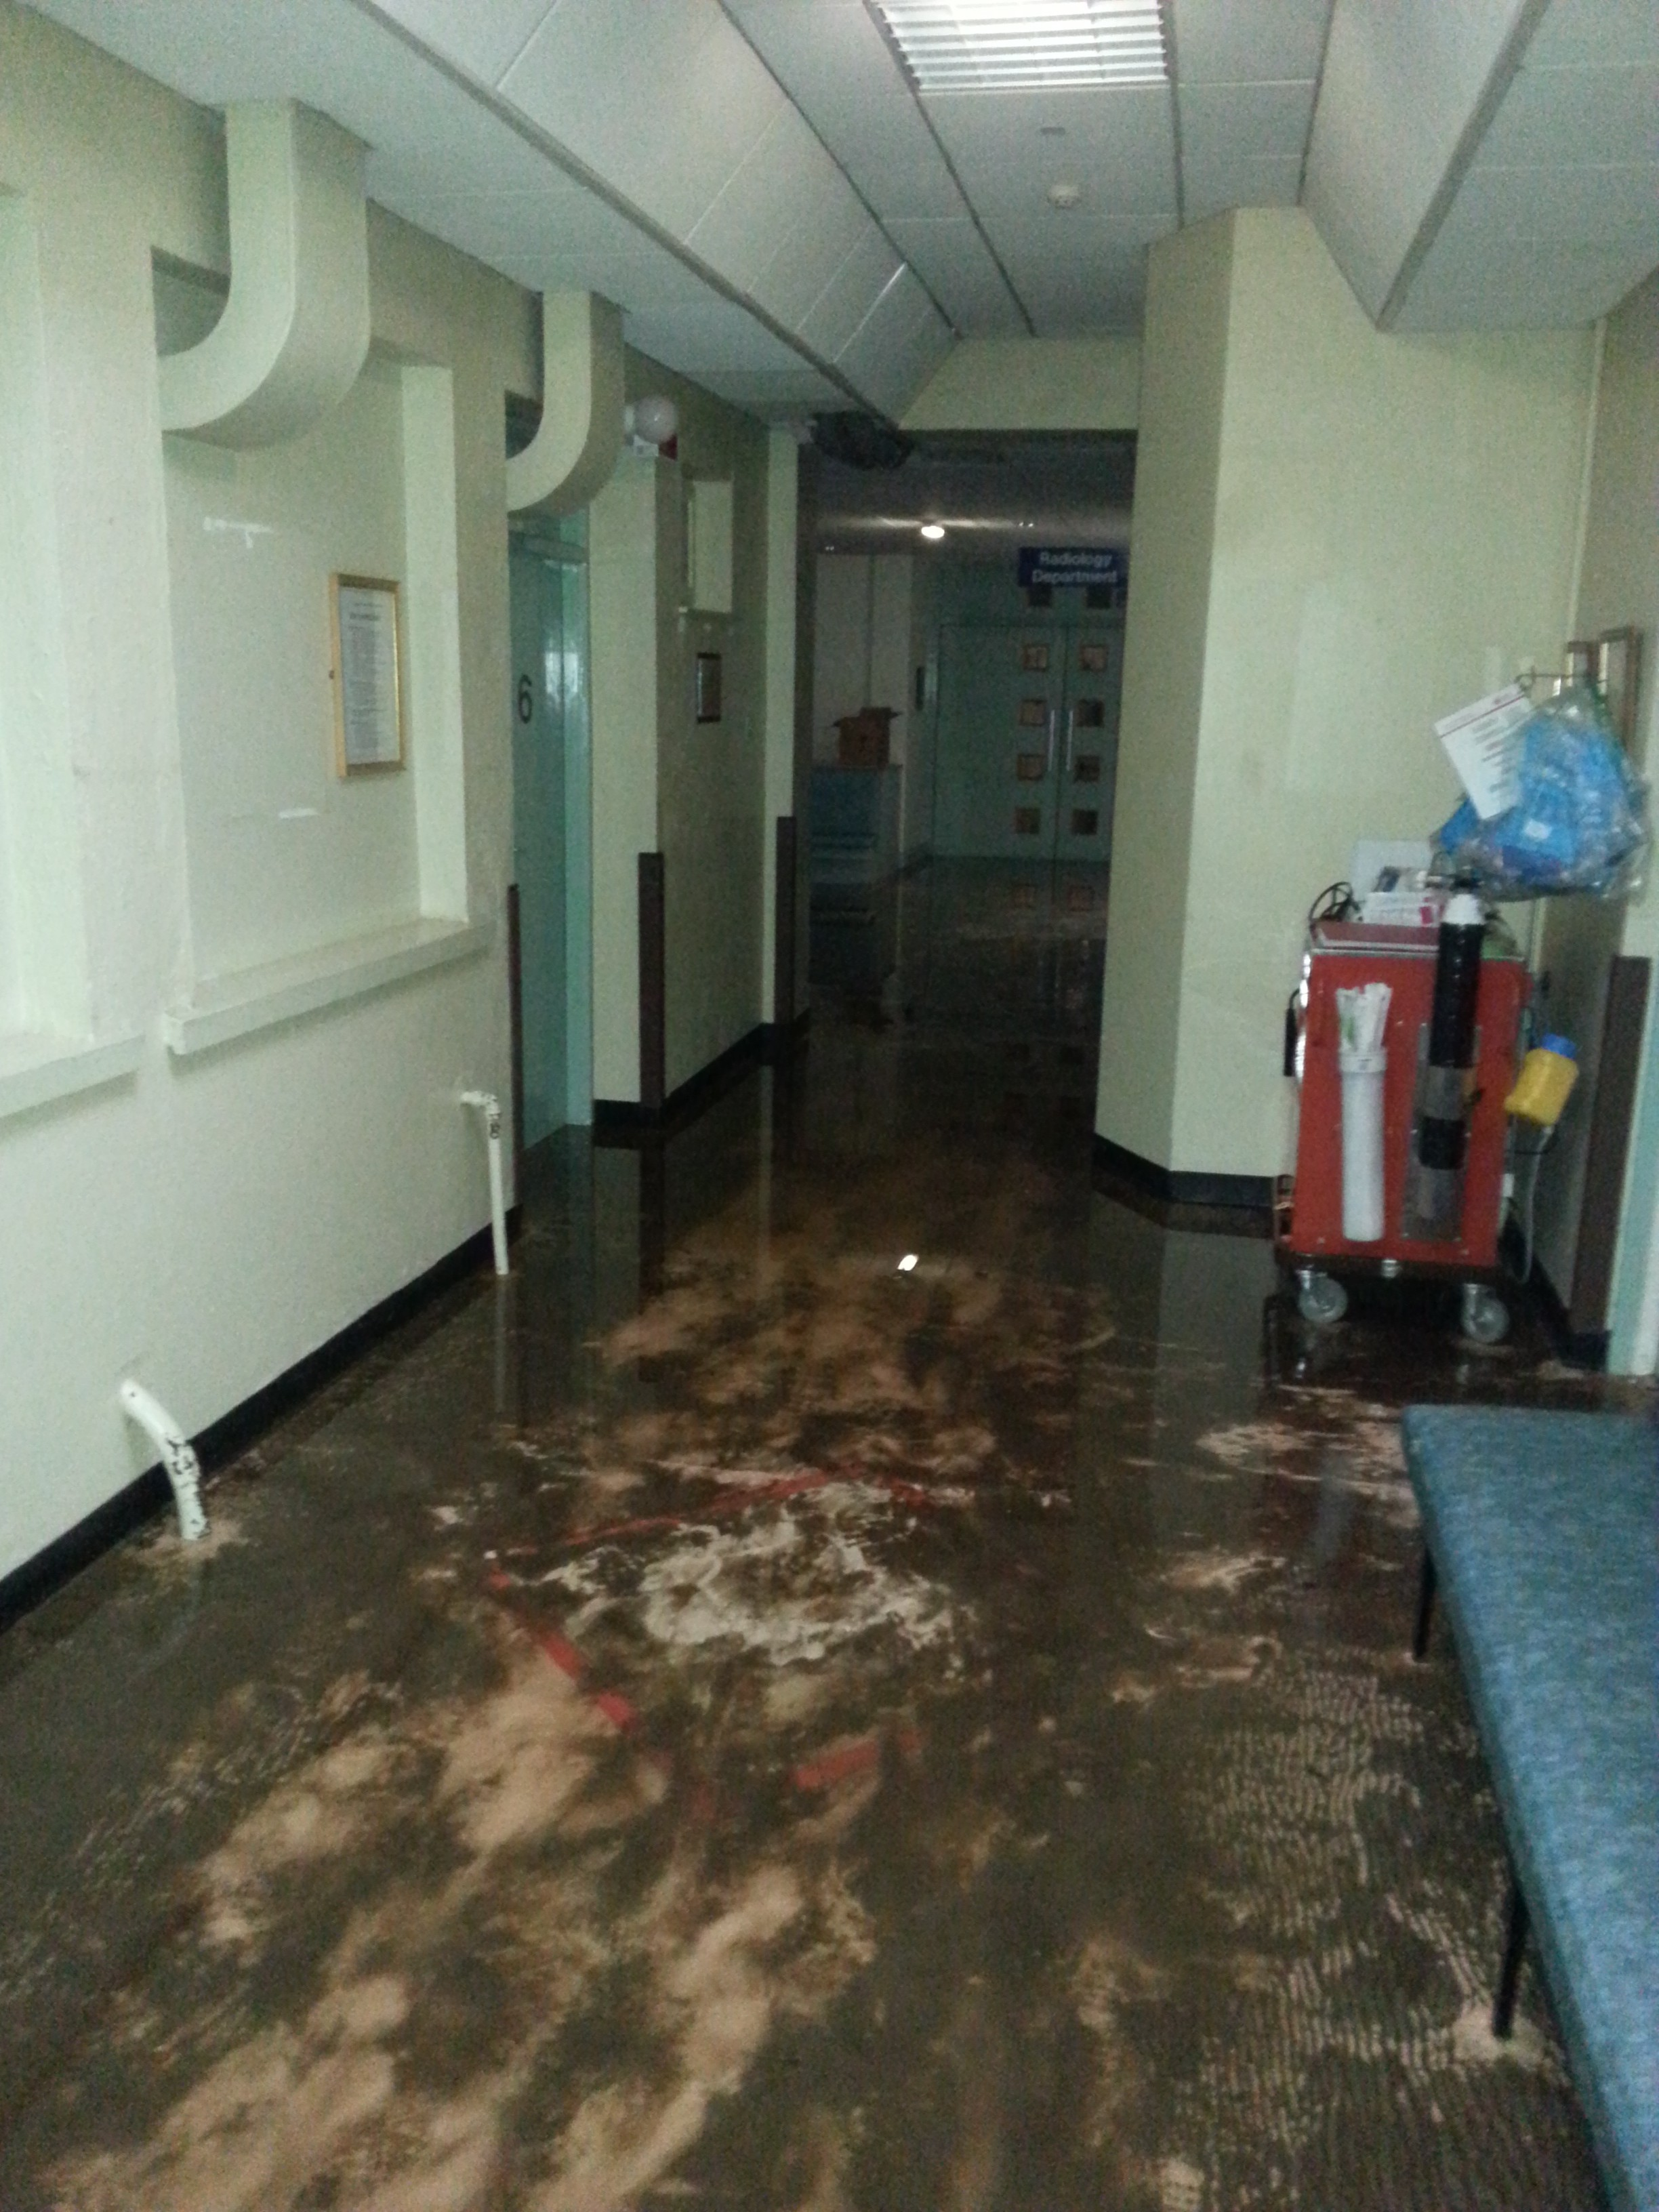 Letterkenny General Hospital Flood Disaster One Year